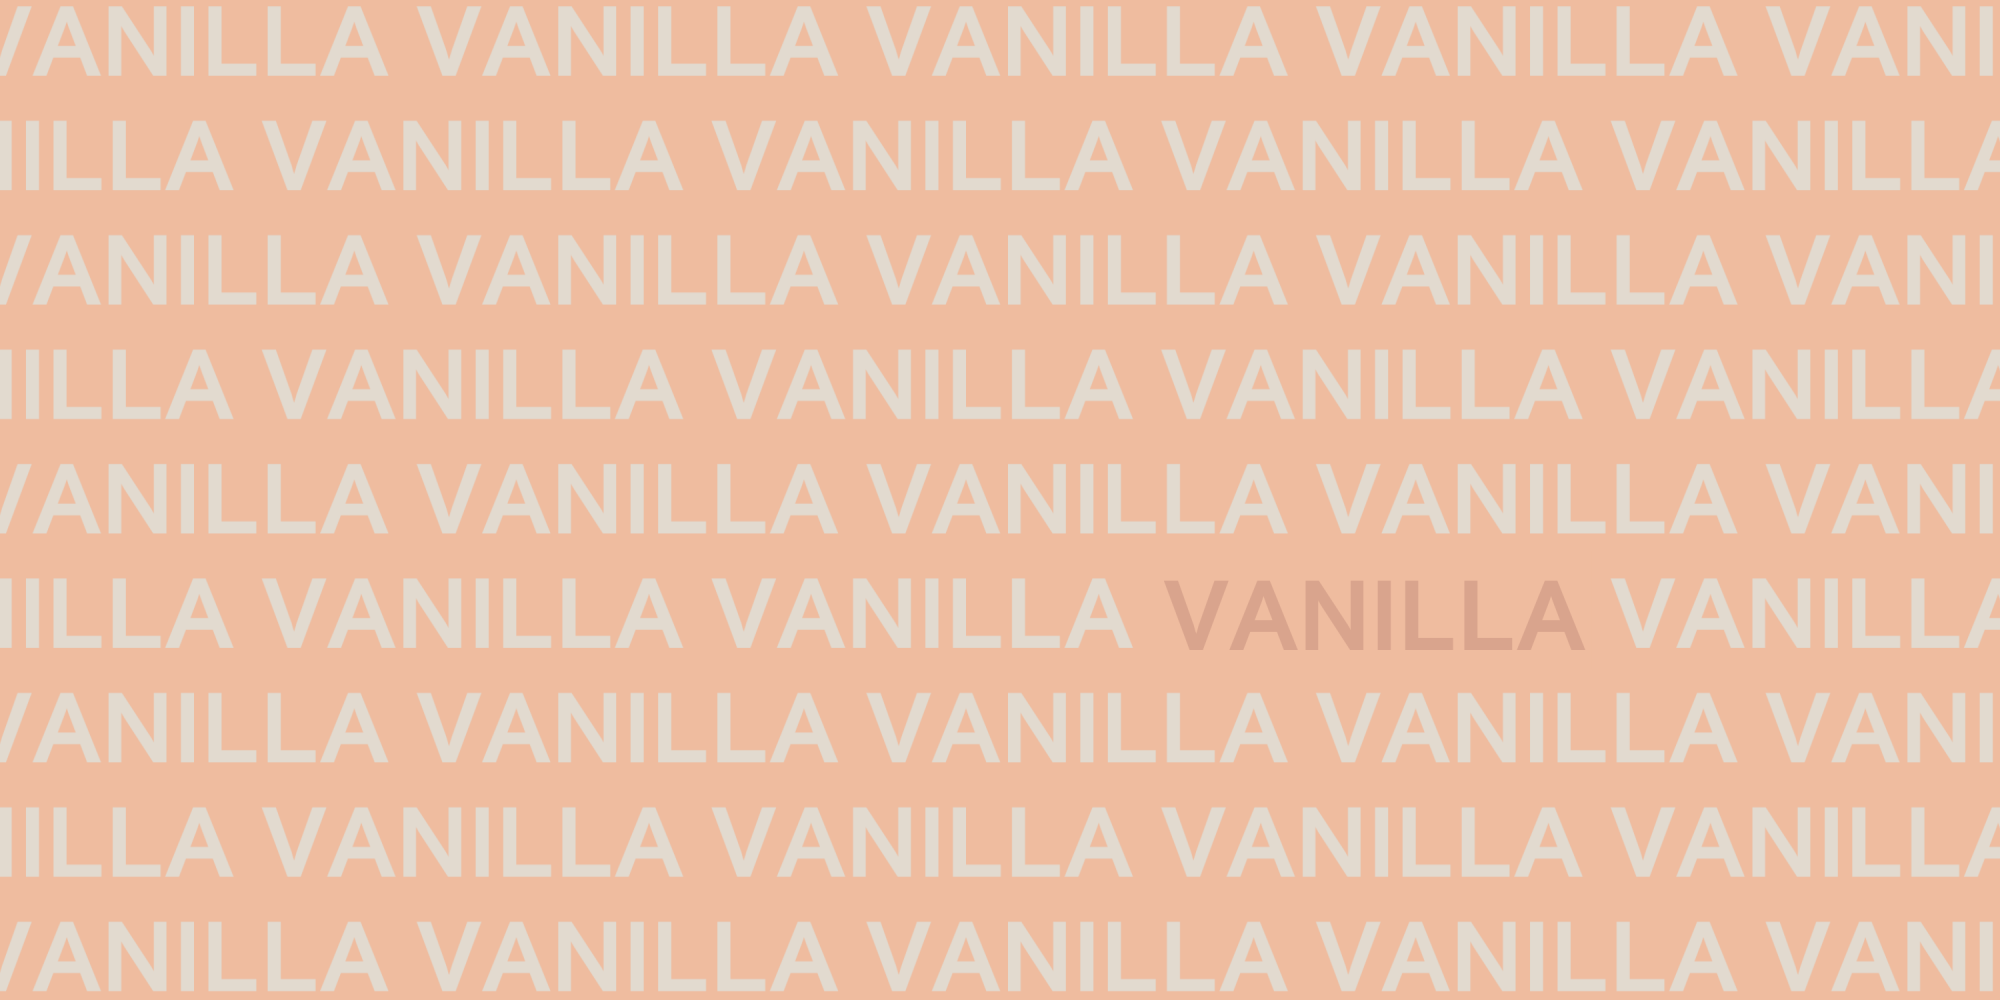 Dipsea Blog: What is vanilla sex, anyway?